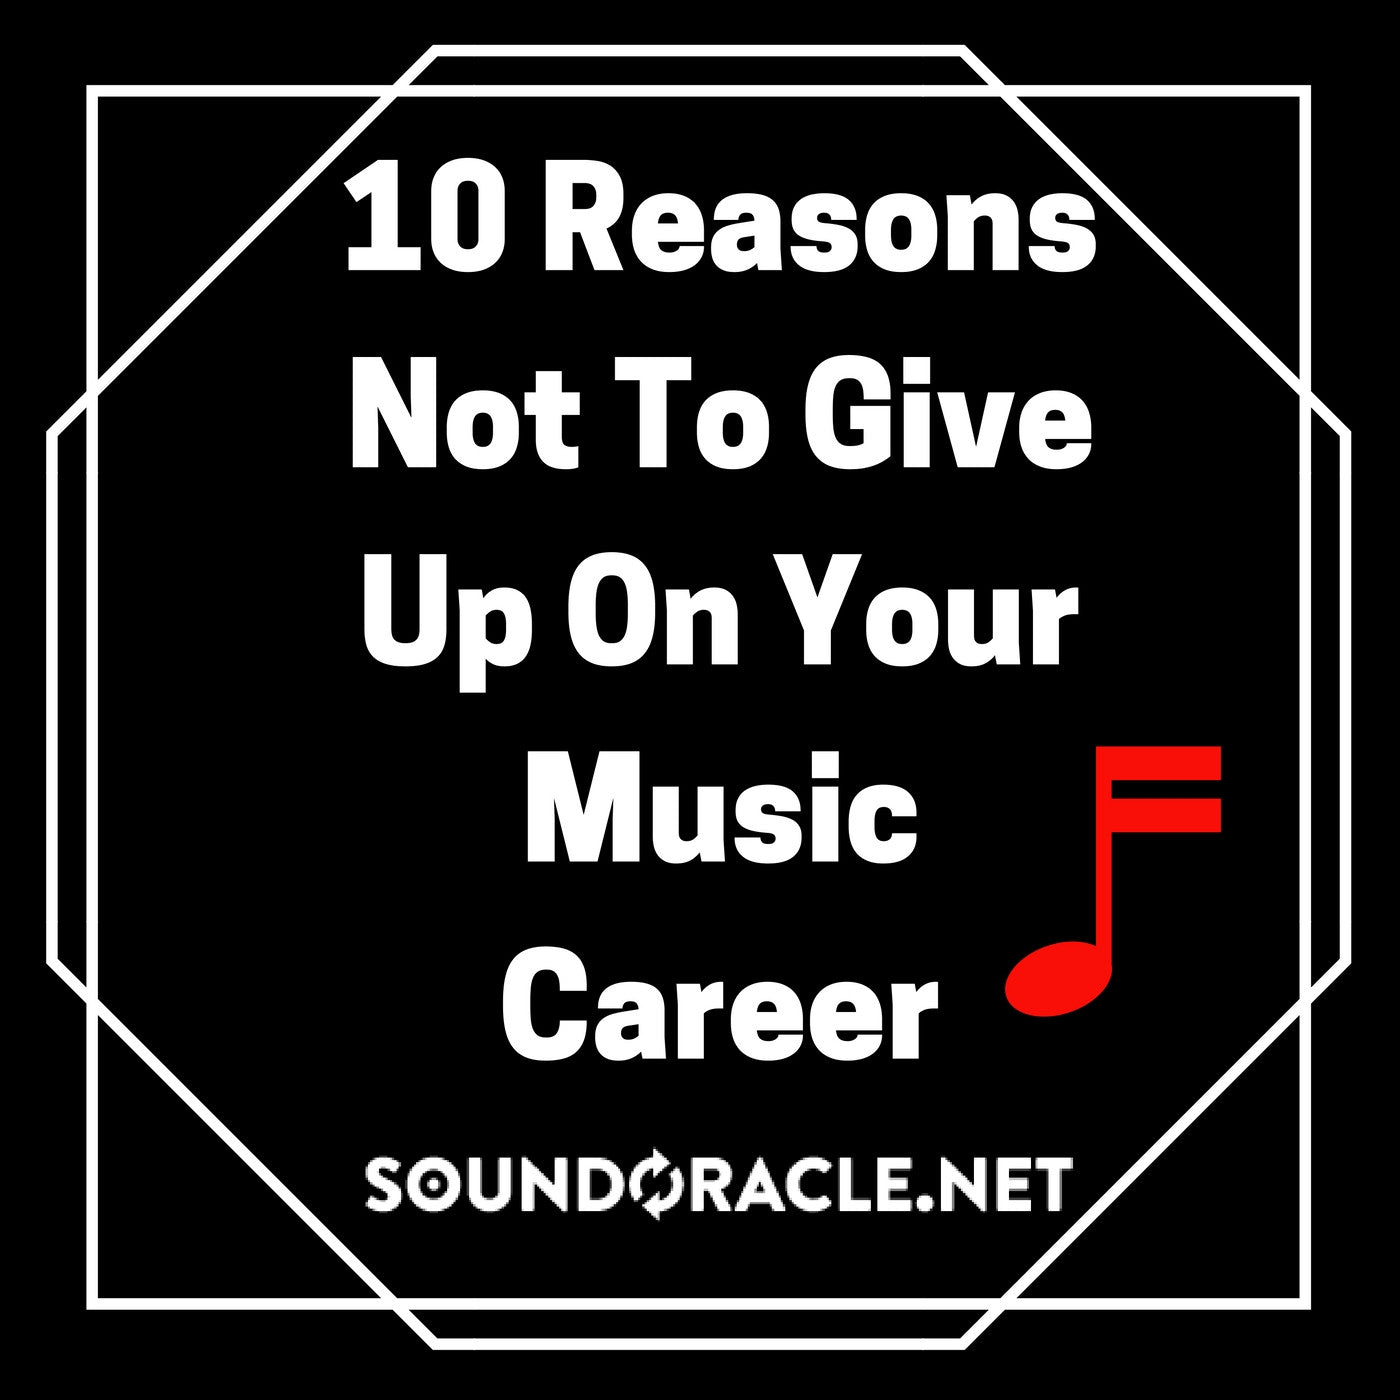 10 Reasons Not To Give Up On Your Music Career